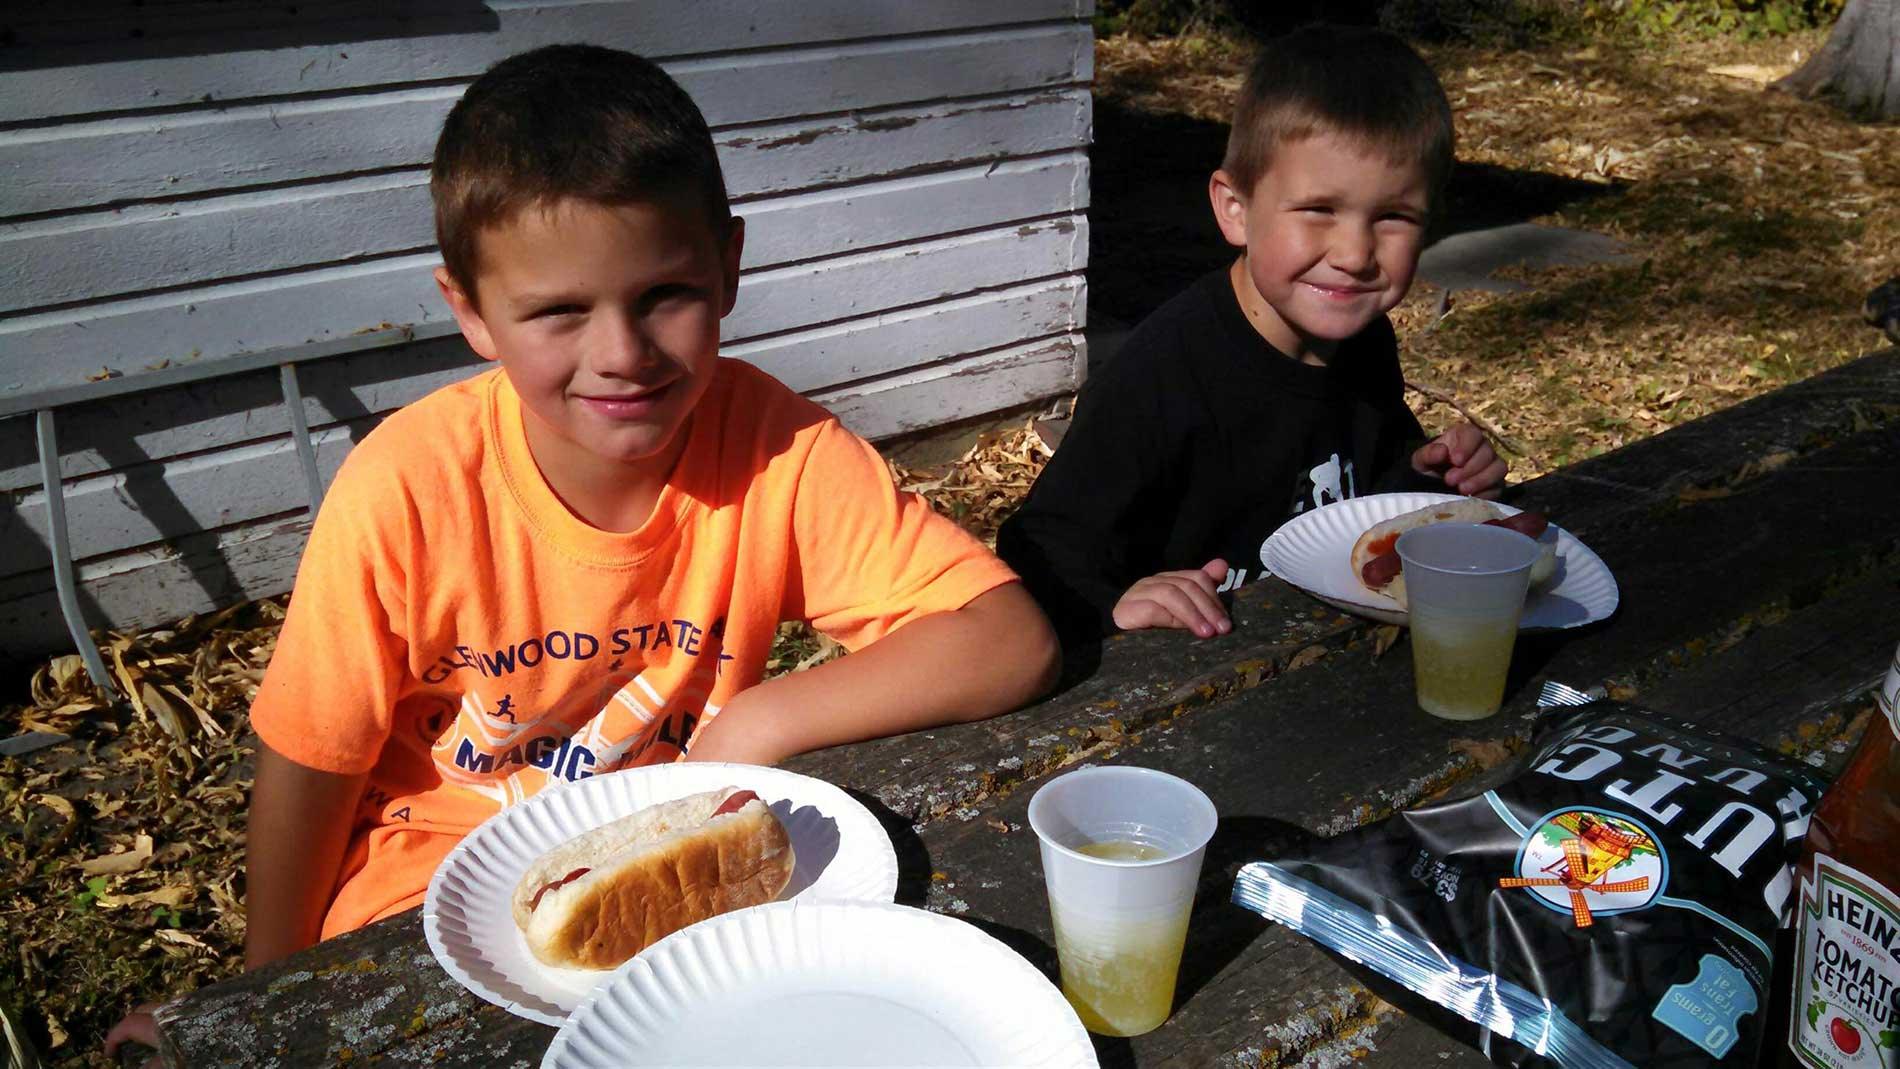 Cole and Reese Enjoying Hot Dogs and Mountain Dew